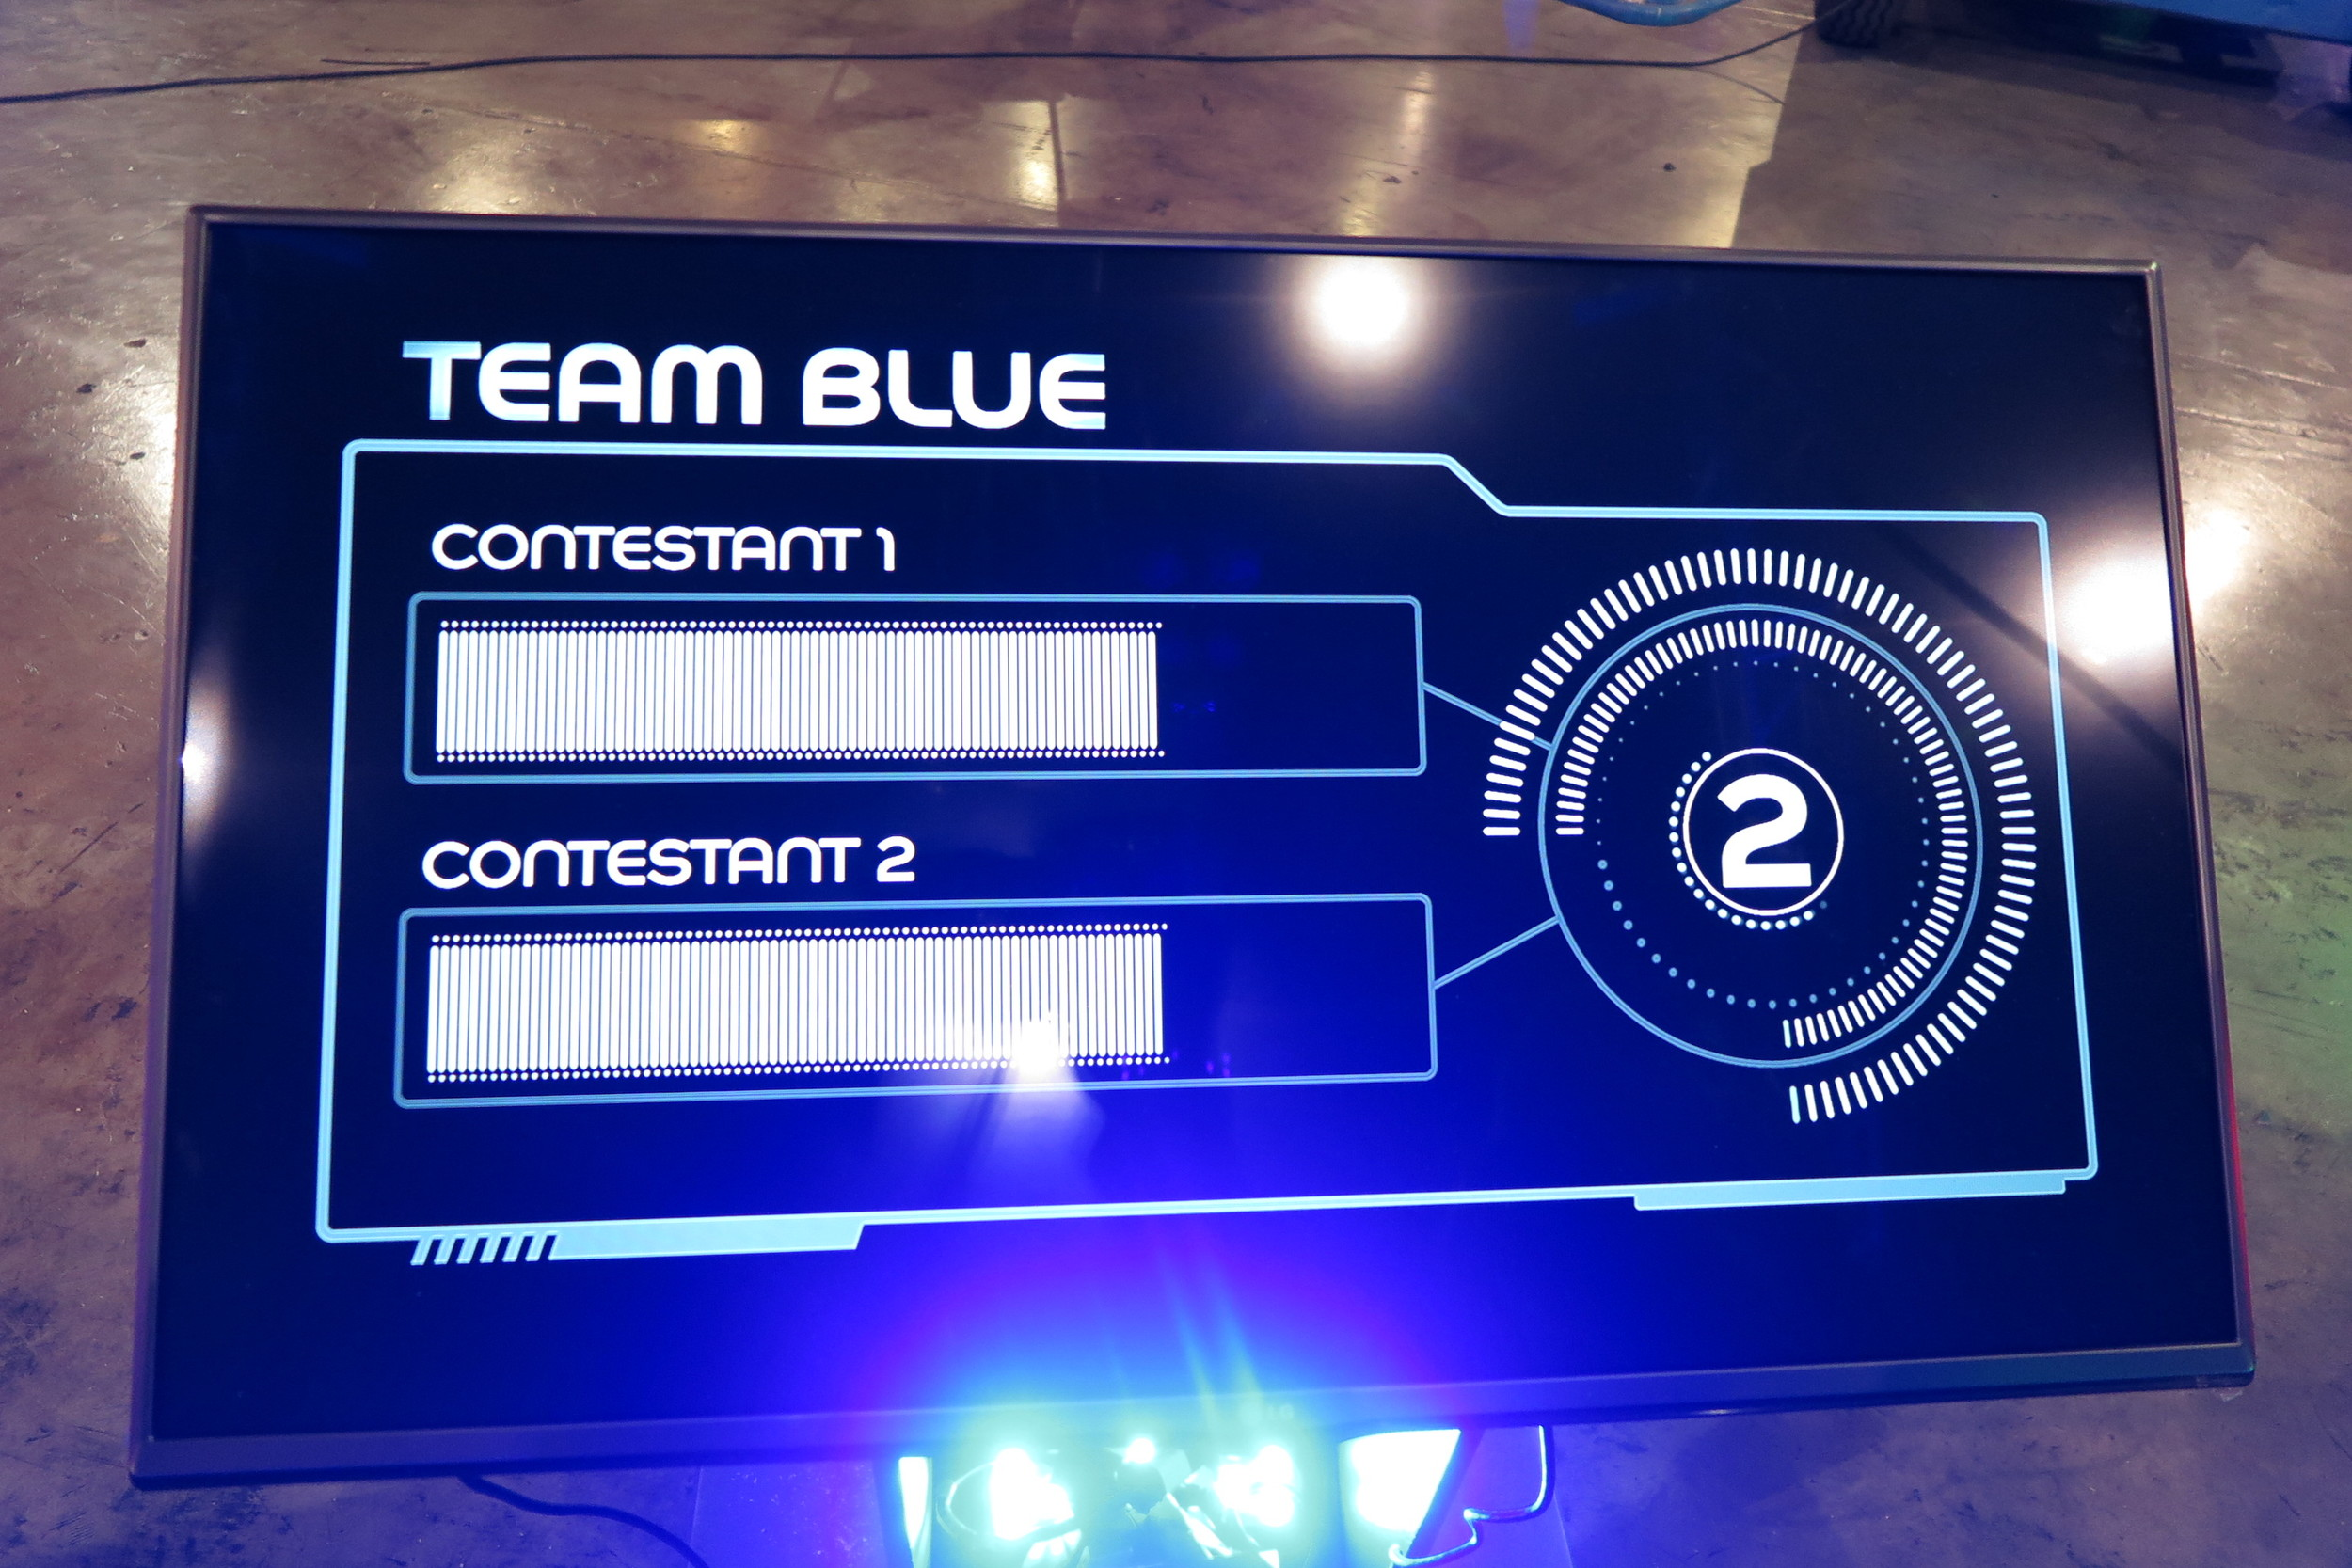 One of the teams' TV challenges running in demo, with generic titles...